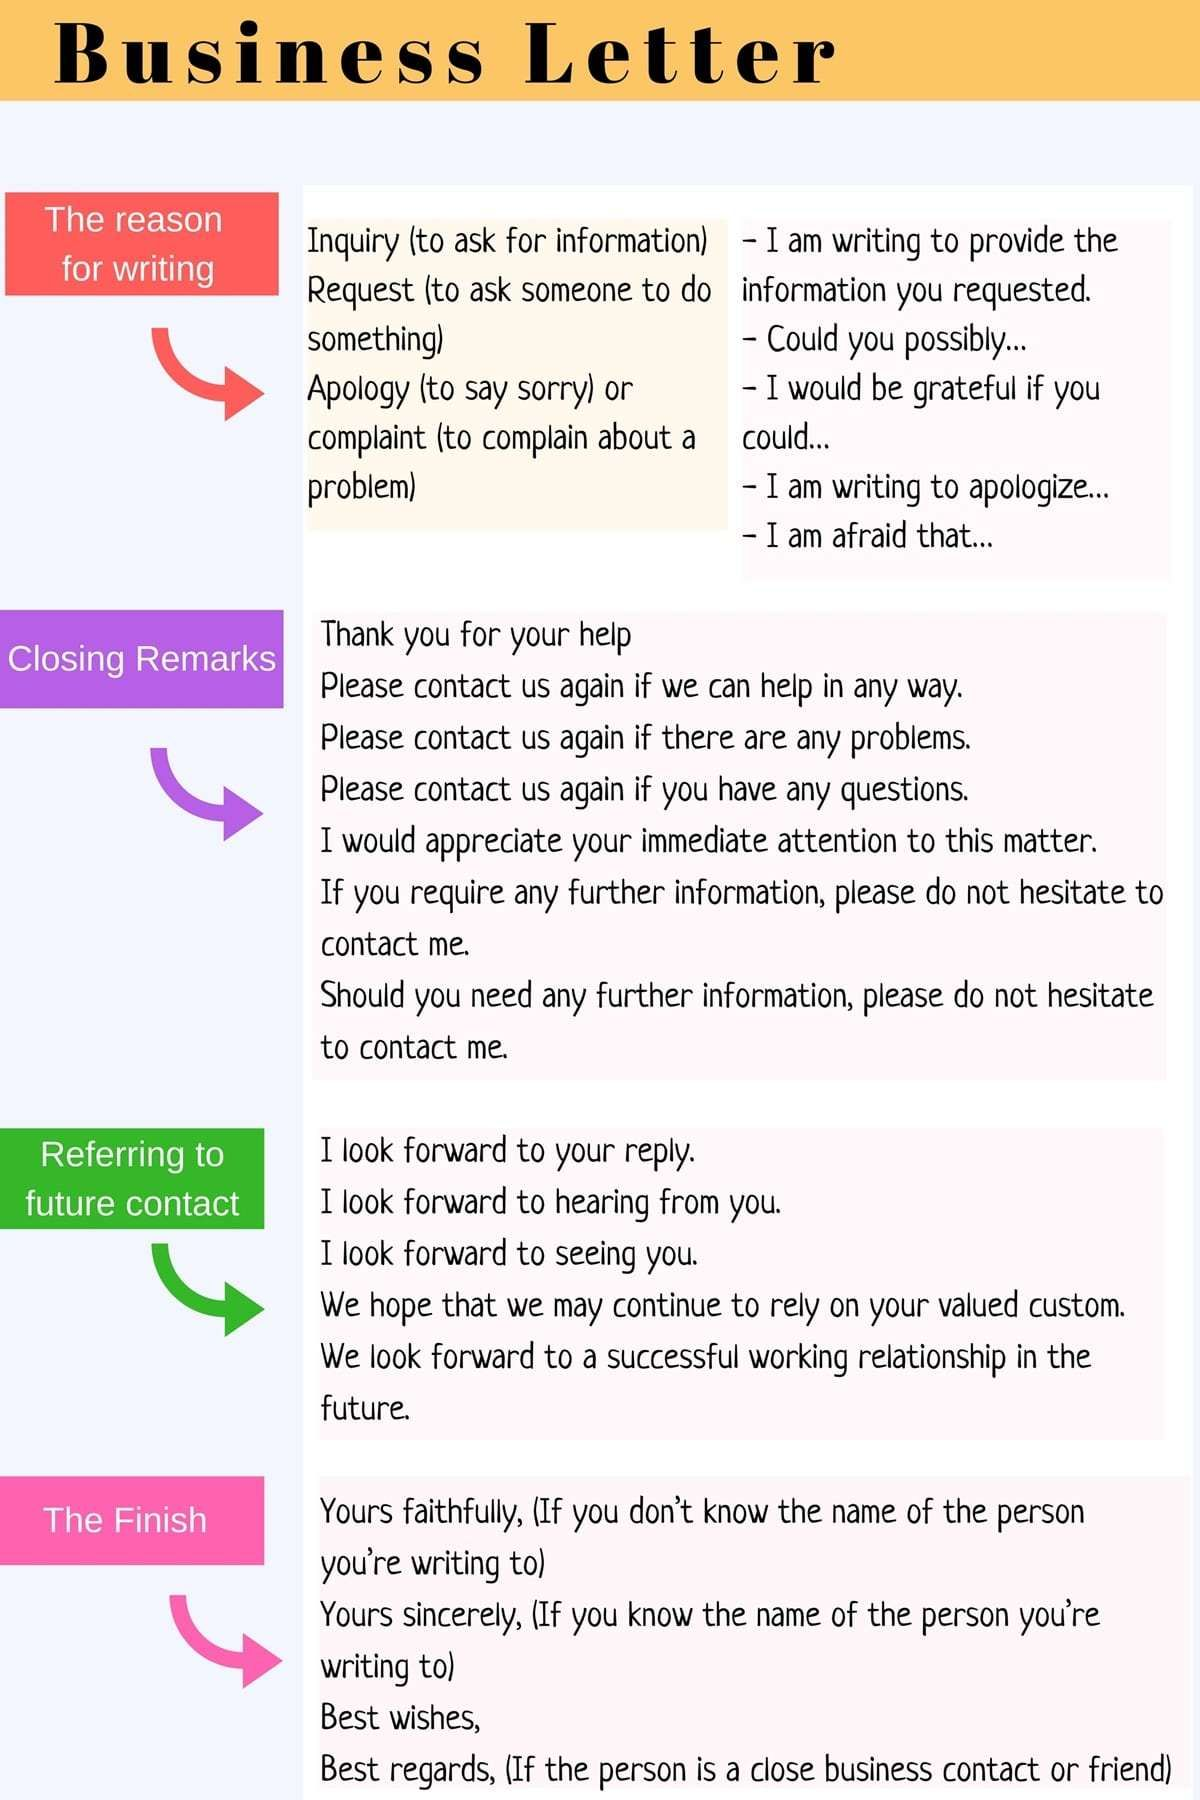 Business Letter English writing skills, English letter